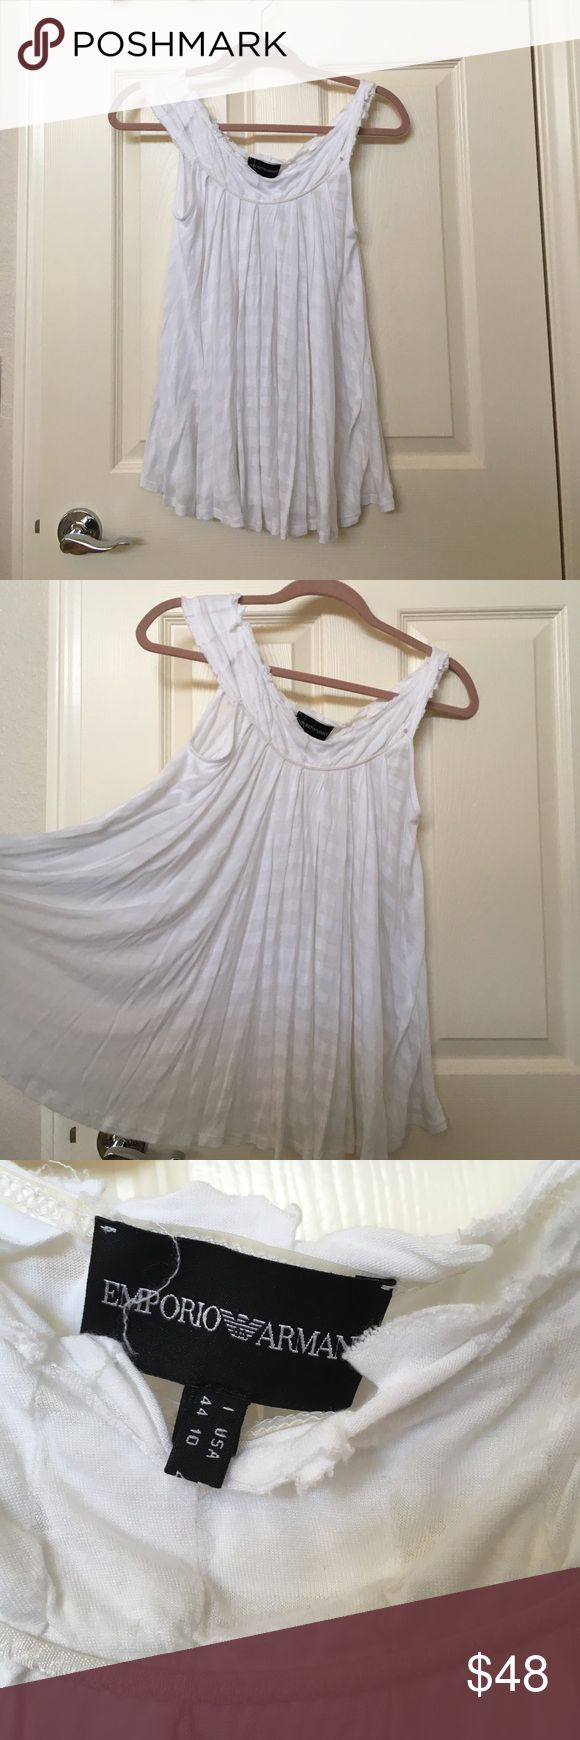 Emporior Armani White Raw Hem Billow Top Lightly worn Emporior Armani top in white stripes. There is fraying at the hems throughout but was designed for the frayed hem look. Size 6/M. Perfect for that summer look! Emporio Armani Tops